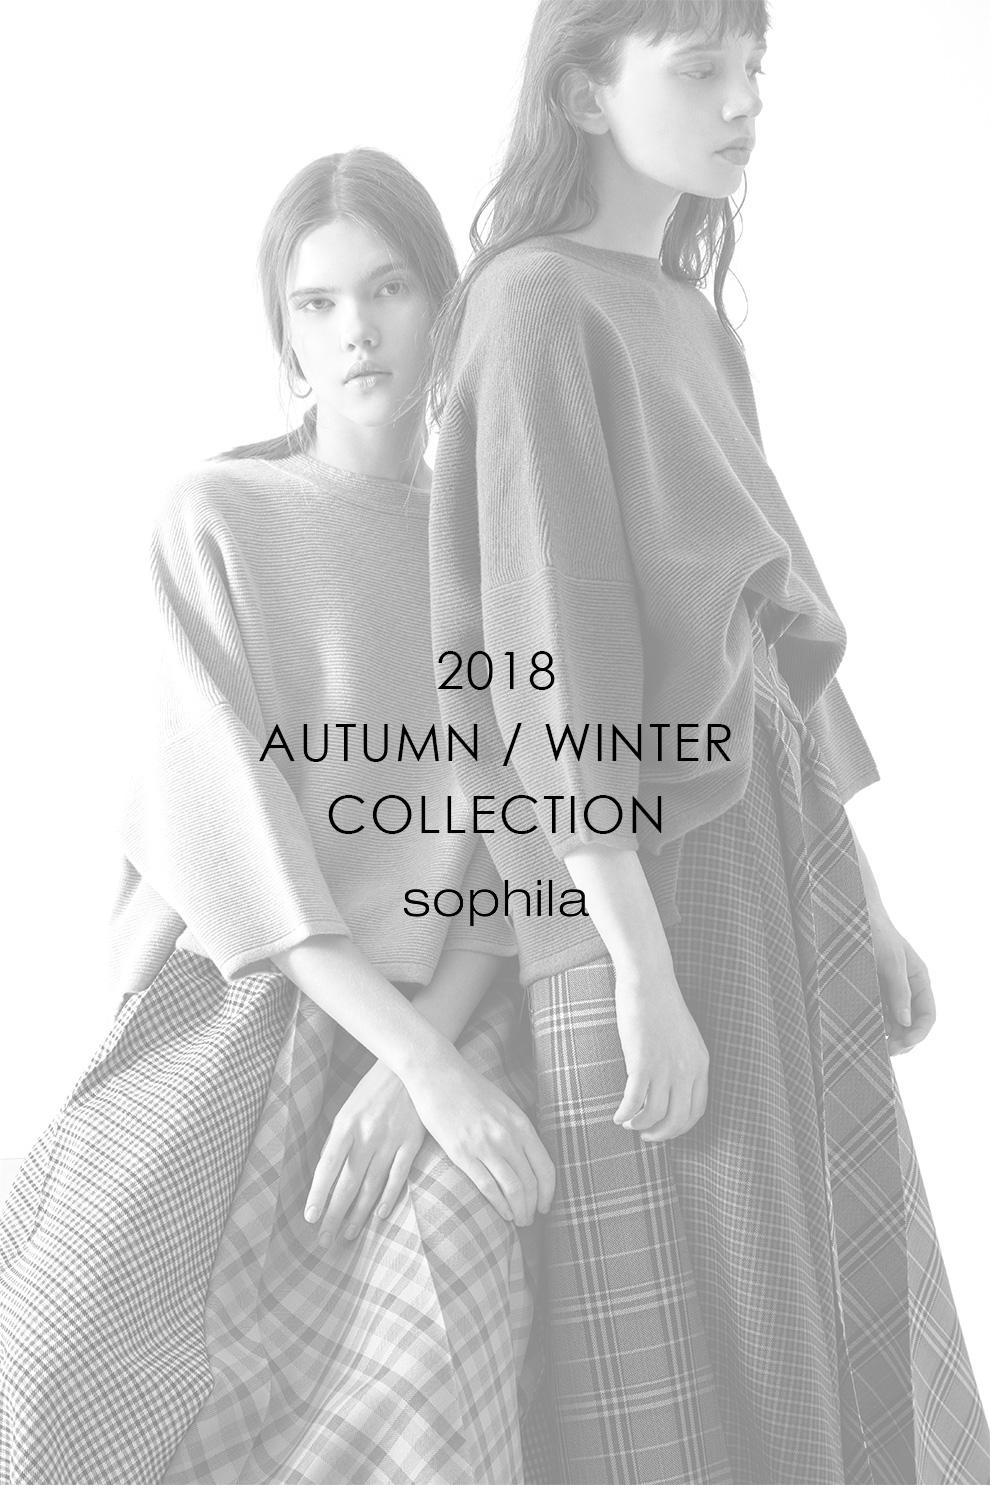 2018 AUTUMN / WINTER COLLECTION